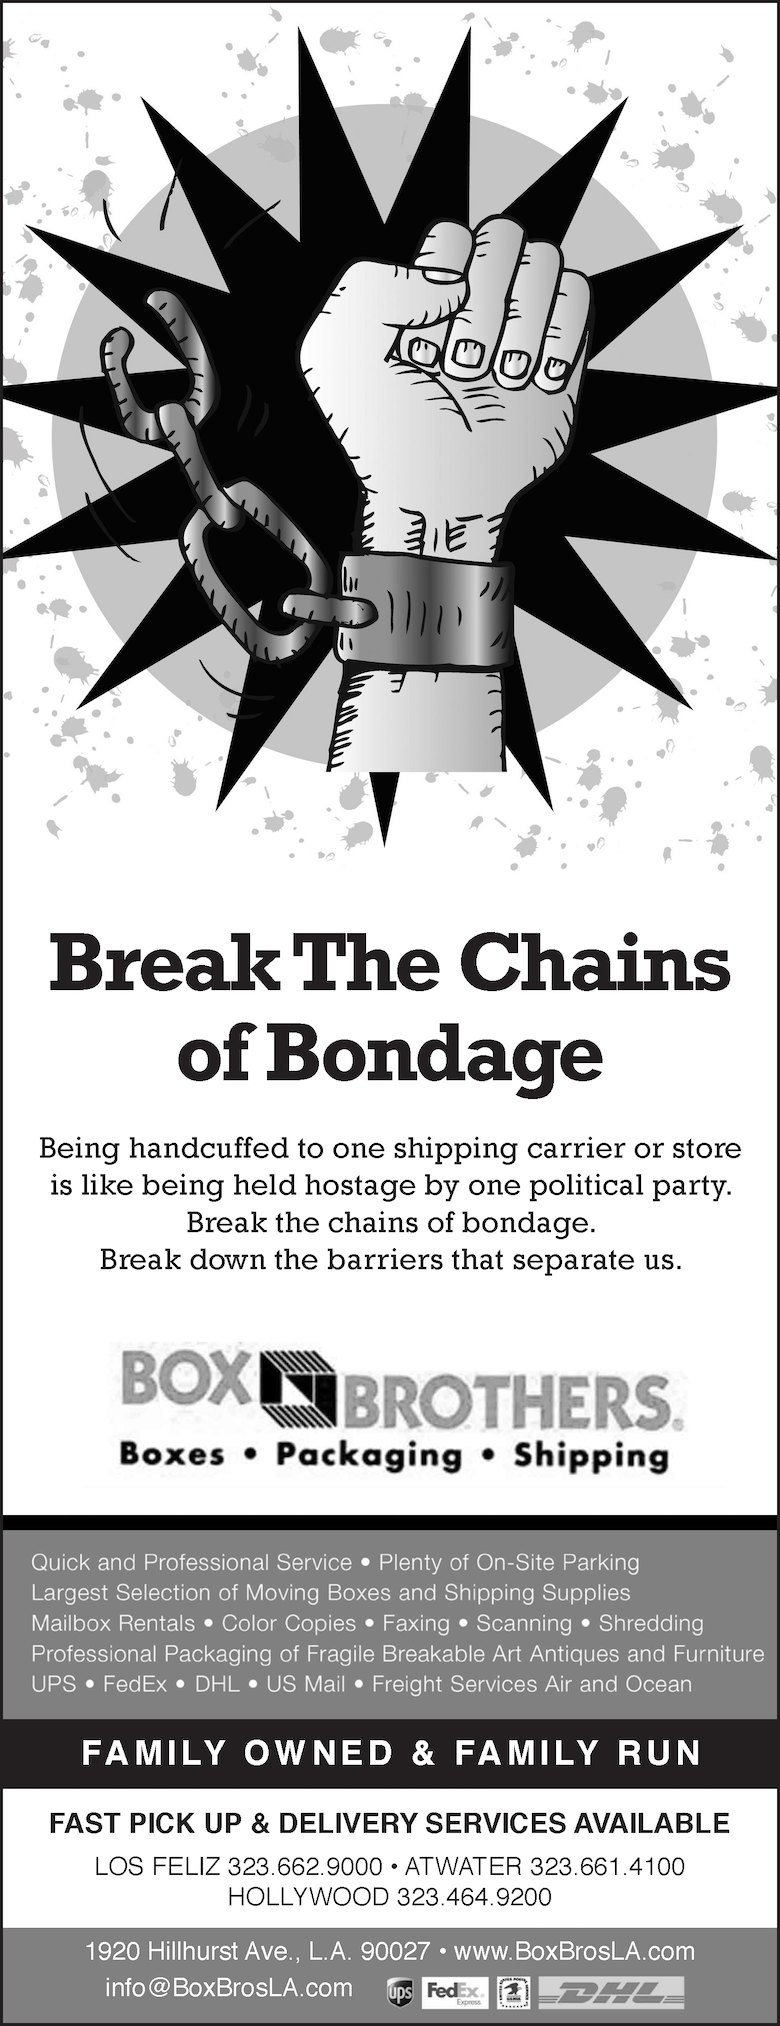 Box Bros LA ad in local paper